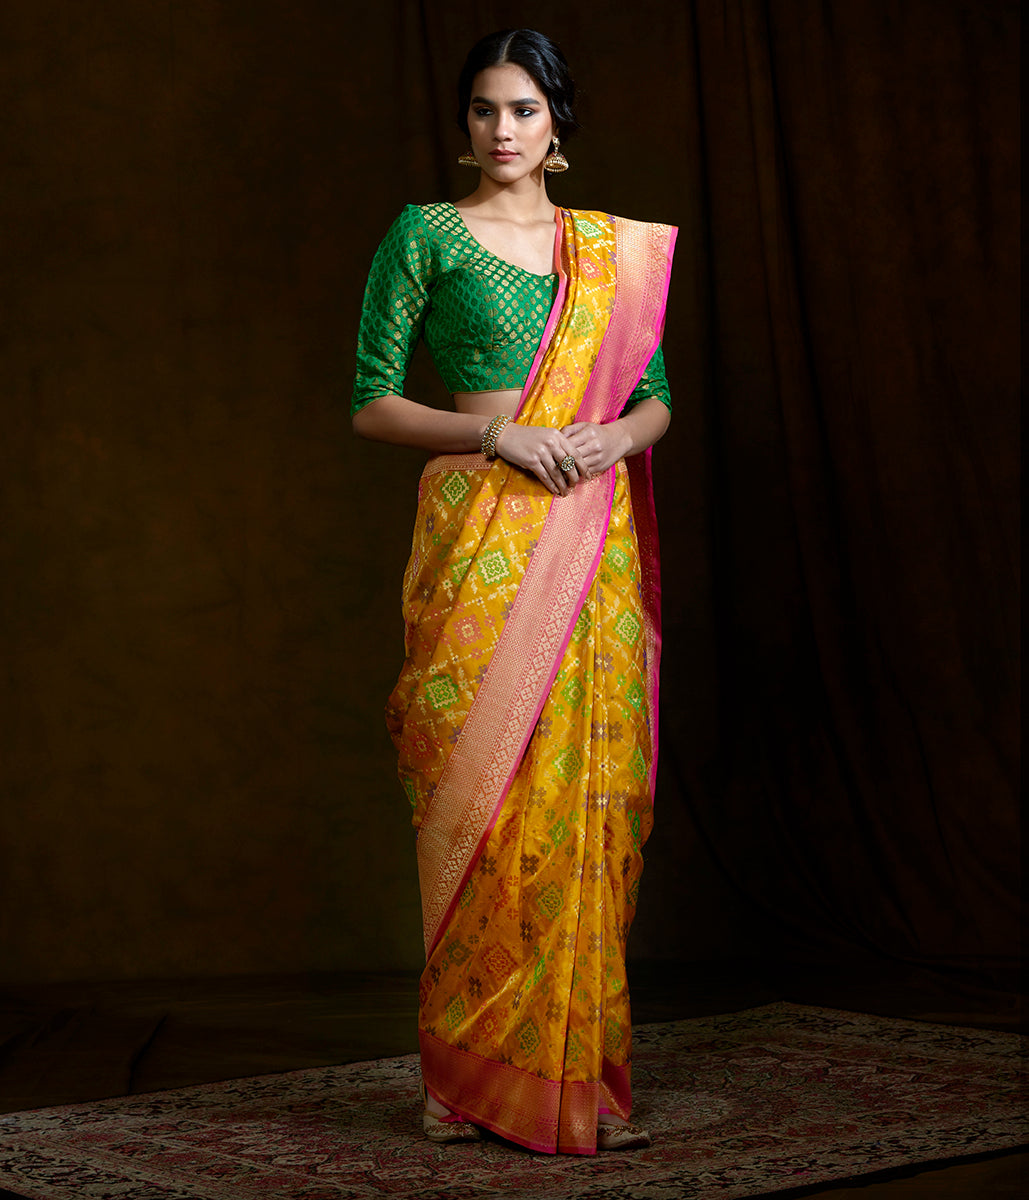 Handwoven Banarasi Patola saree in Yellow with a pink border